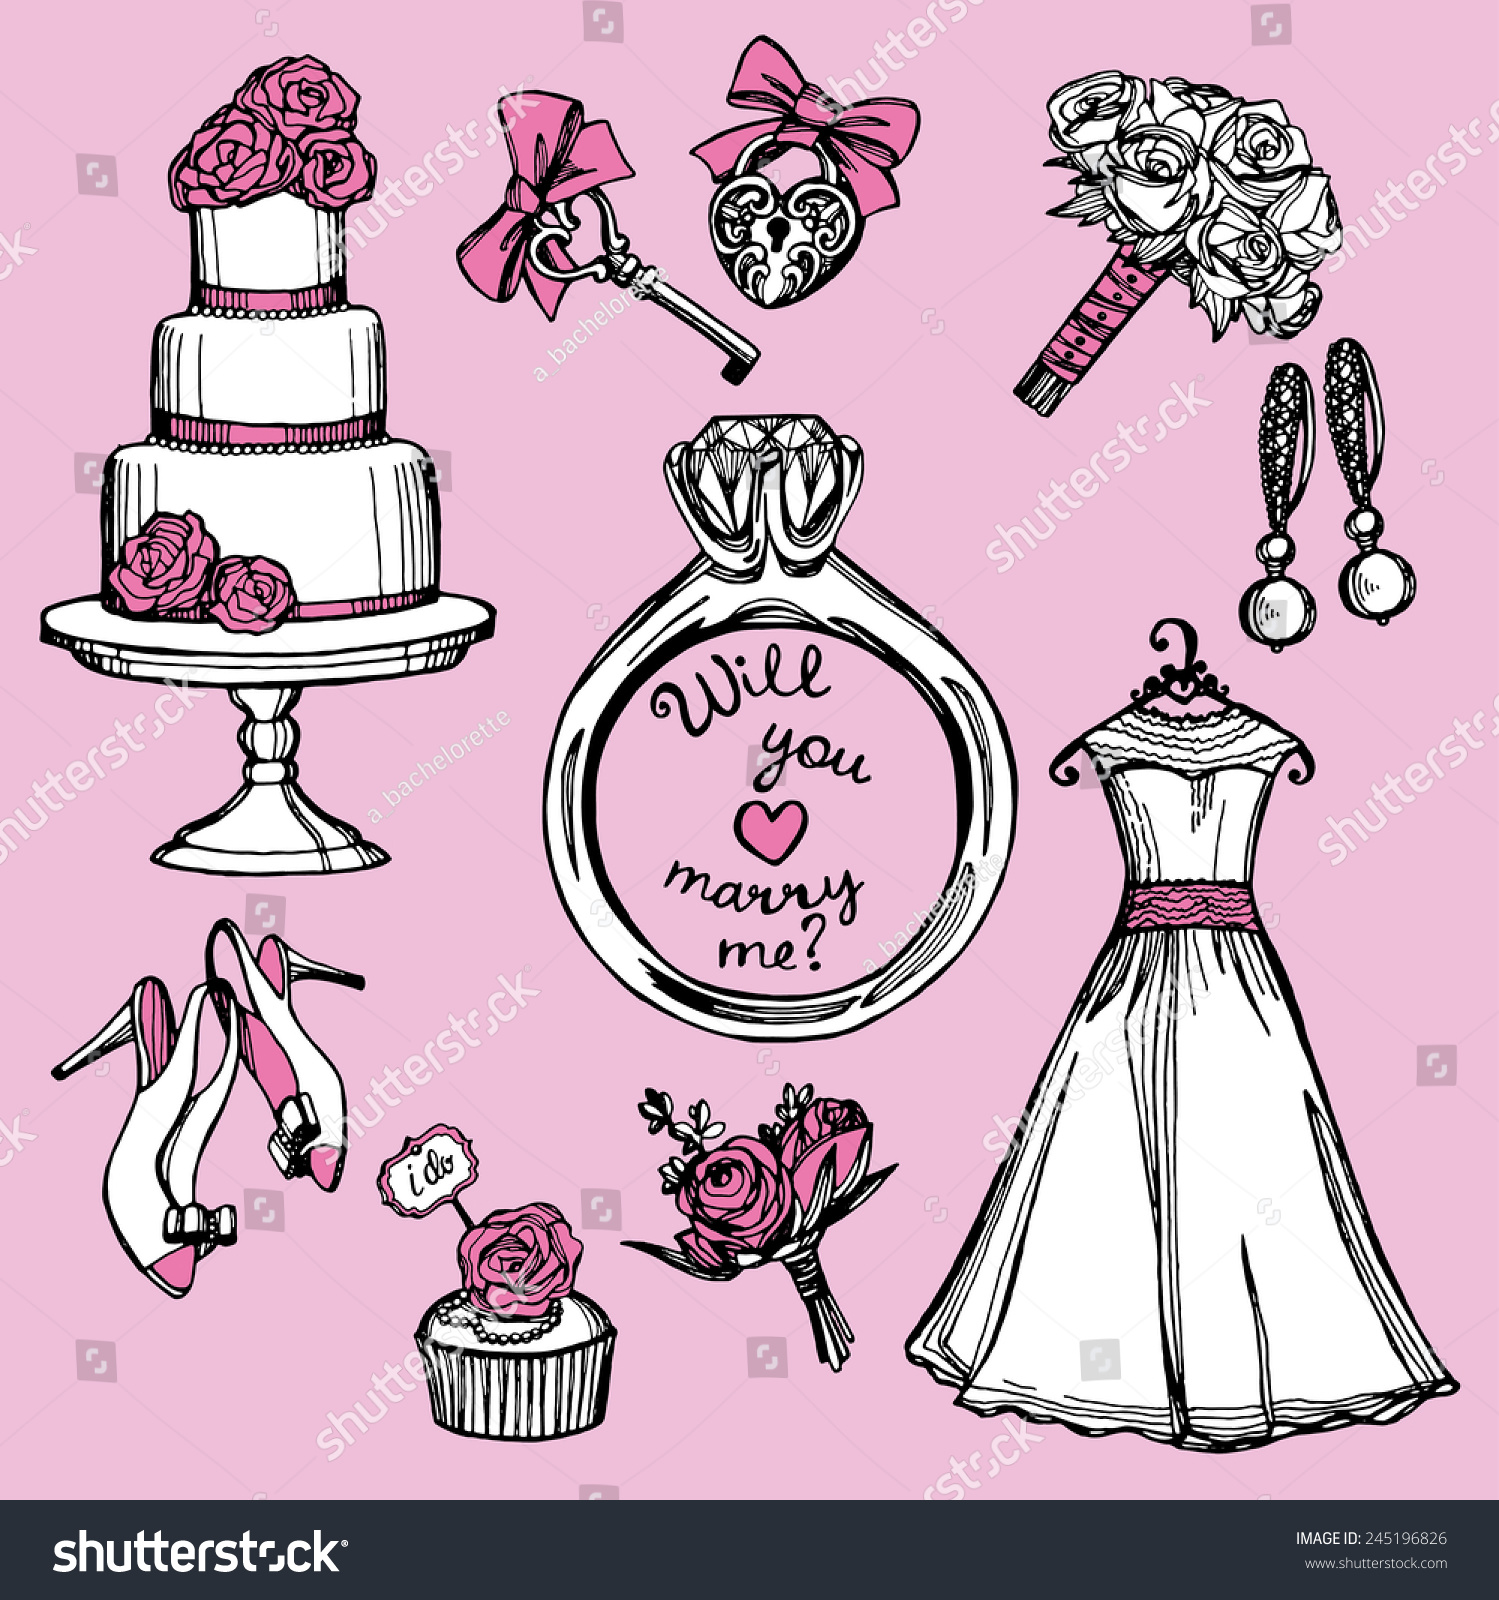 Hand Drawn Pink White Doodle Wedding Stock Vector HD (Royalty Free ...